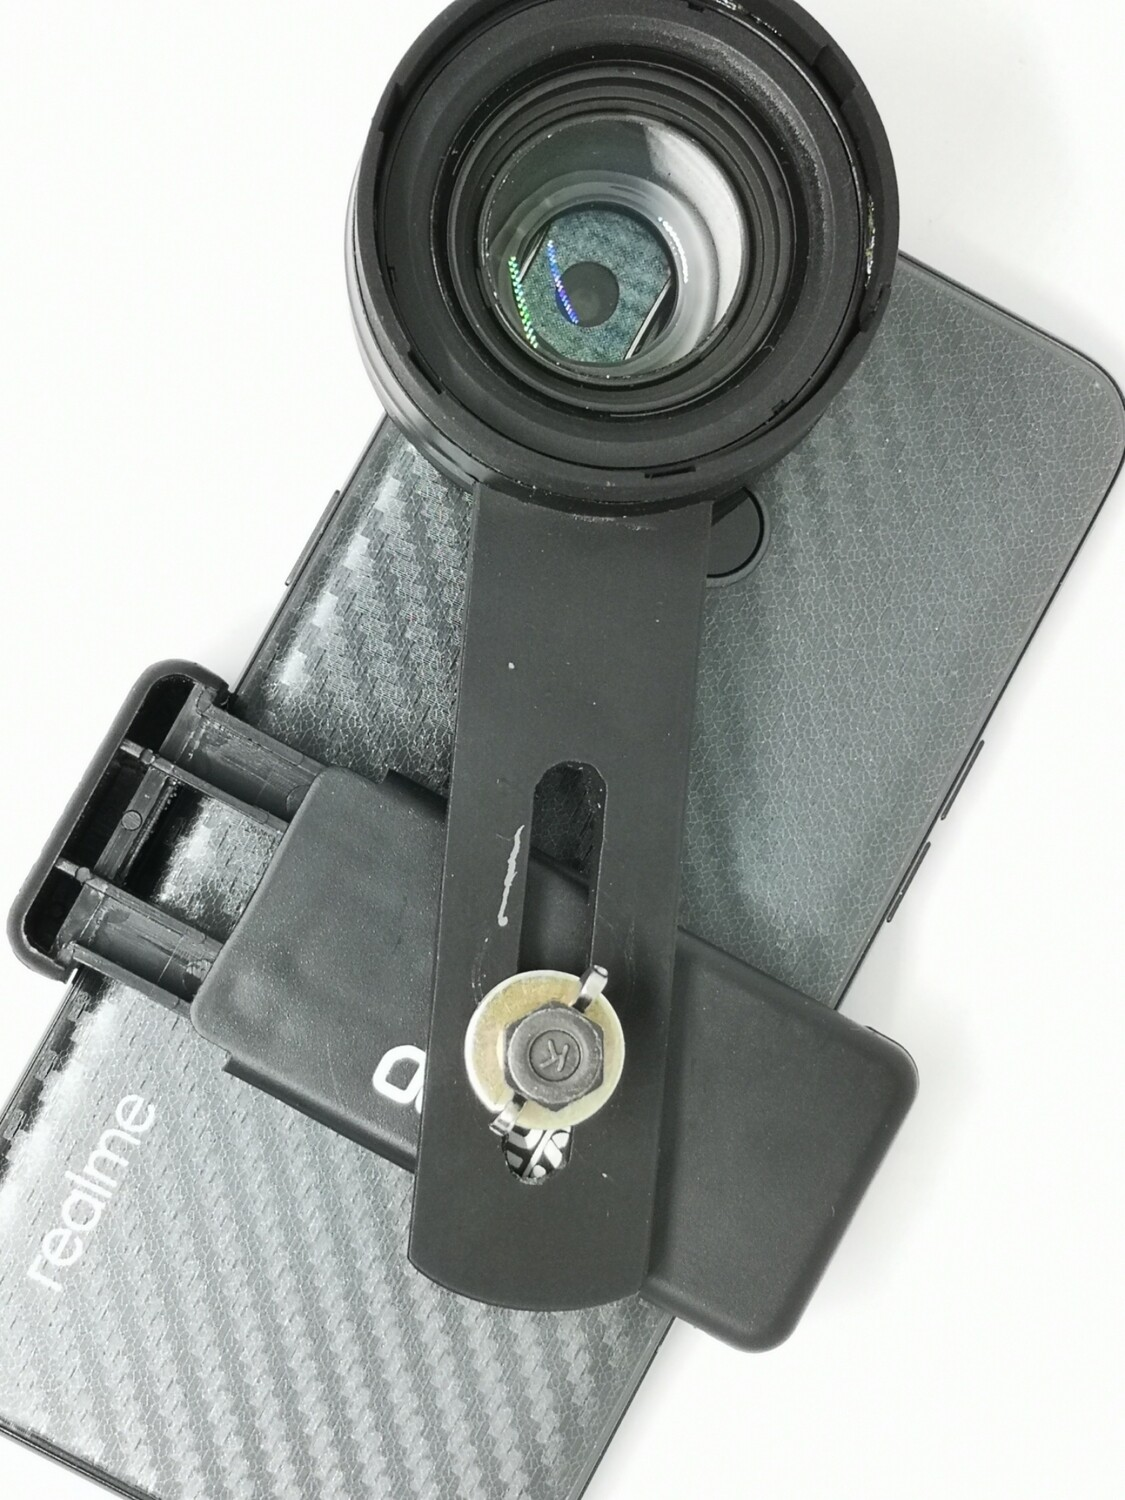 [New] Prosumer 4.0cm Indo Variable Magnification 2in1 Zoom & Macro Phone Lens Made from DSLR Glass (PIM1)